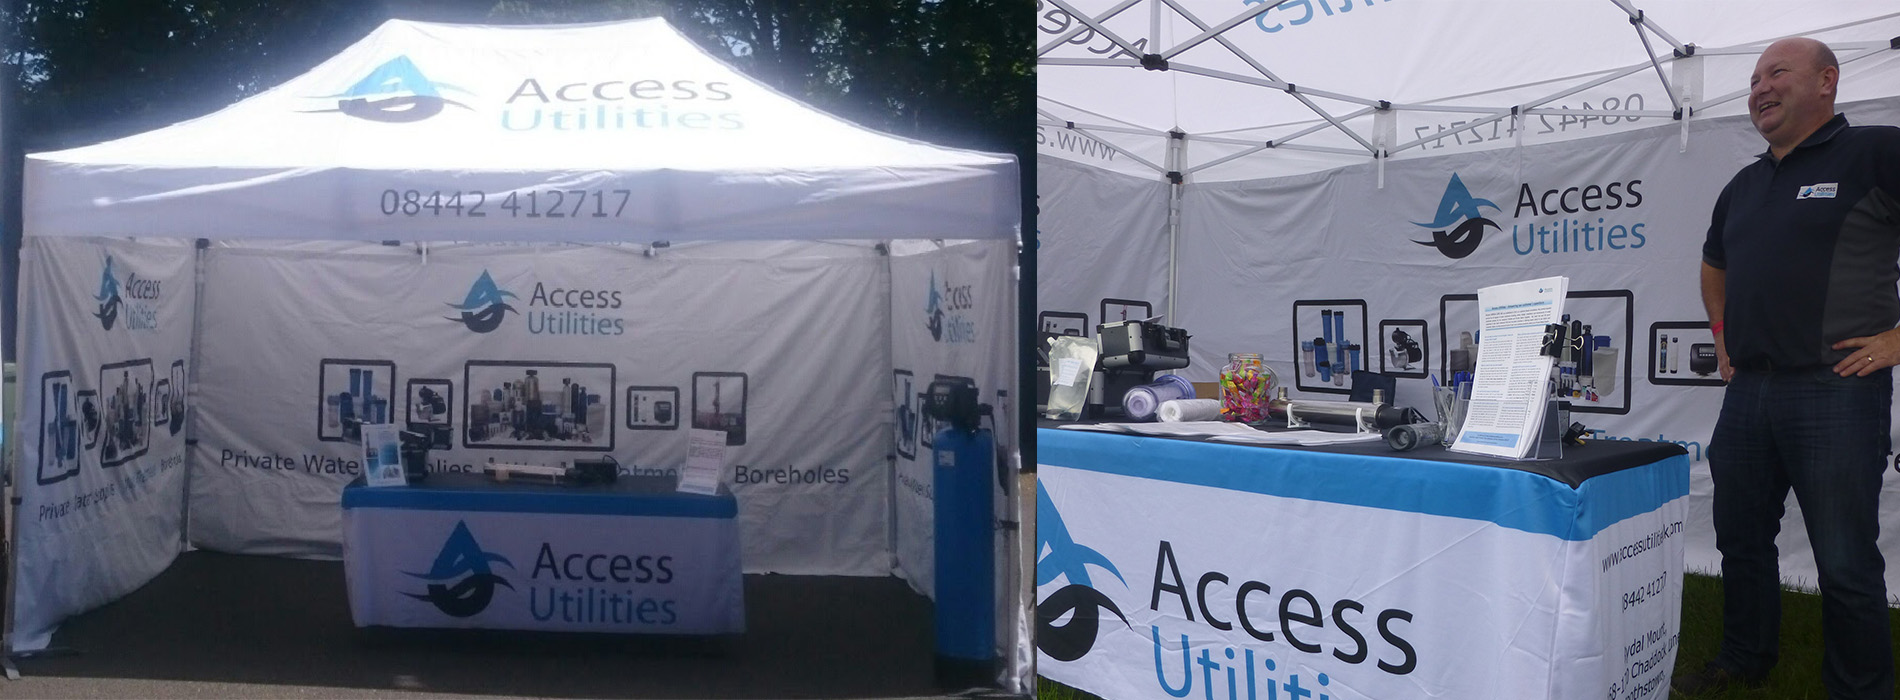 Access Utilities Events